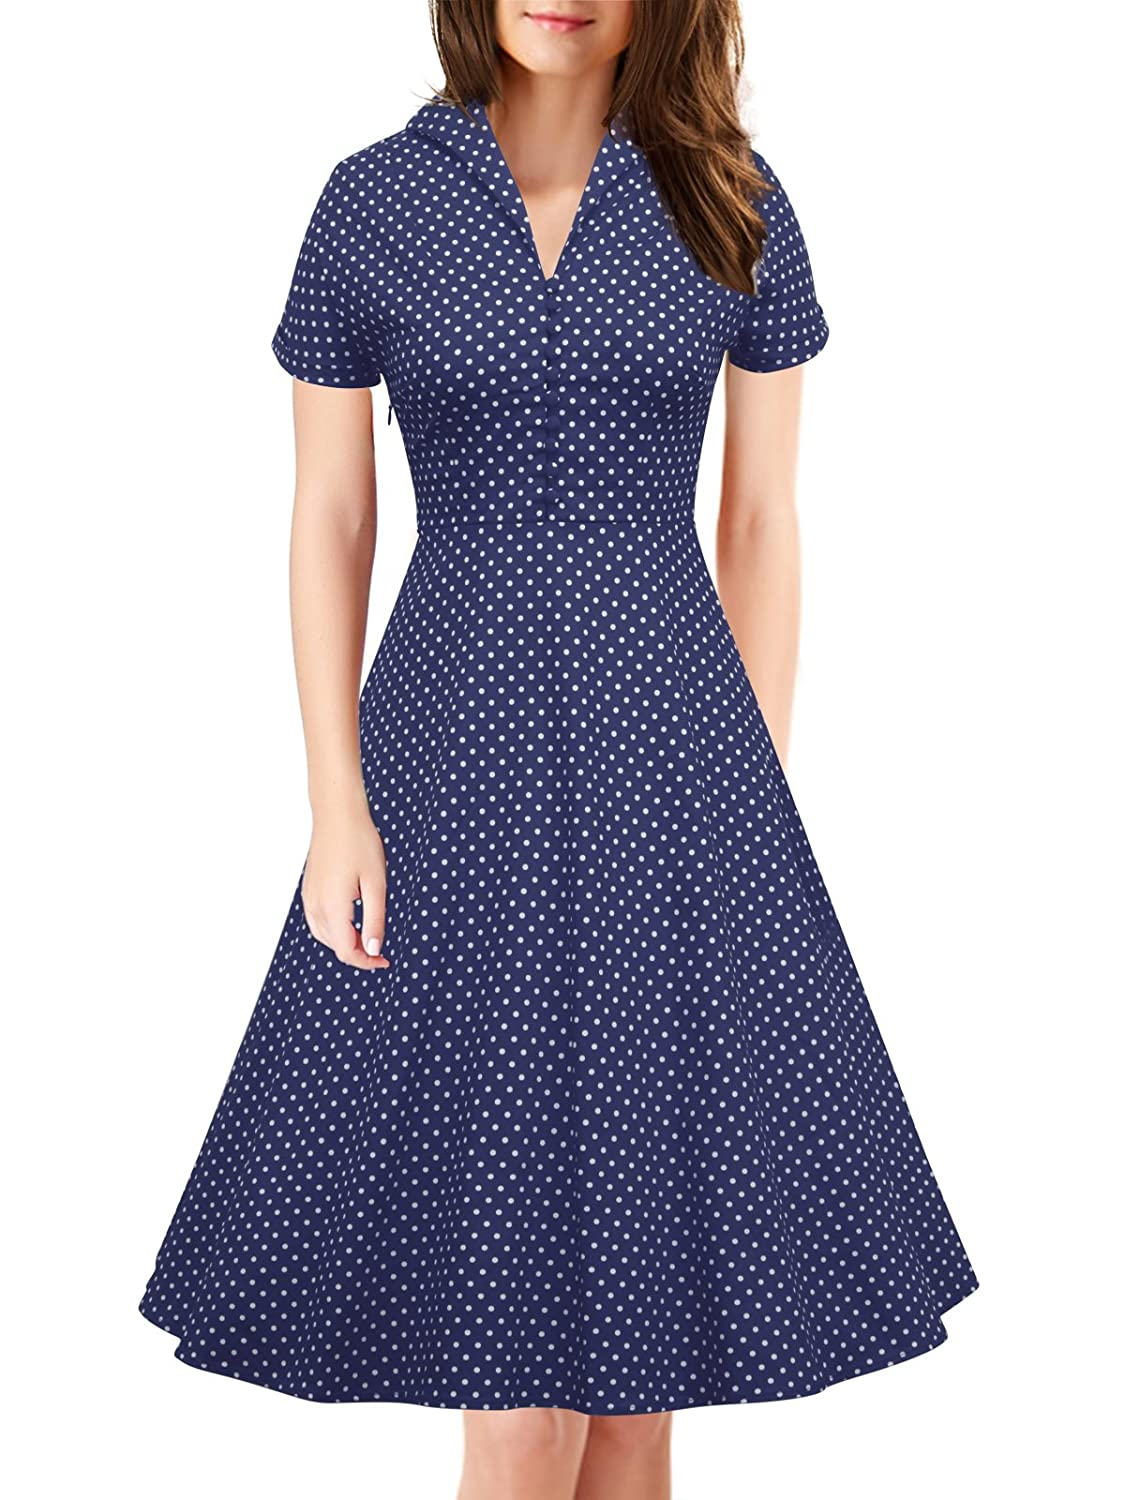 4b57e648acd 1940s Shirtwaist Dress History iLover Womens Classy Vintage 1940s Short  Sleeves Rockabilly Swing Evening Dress  28.99